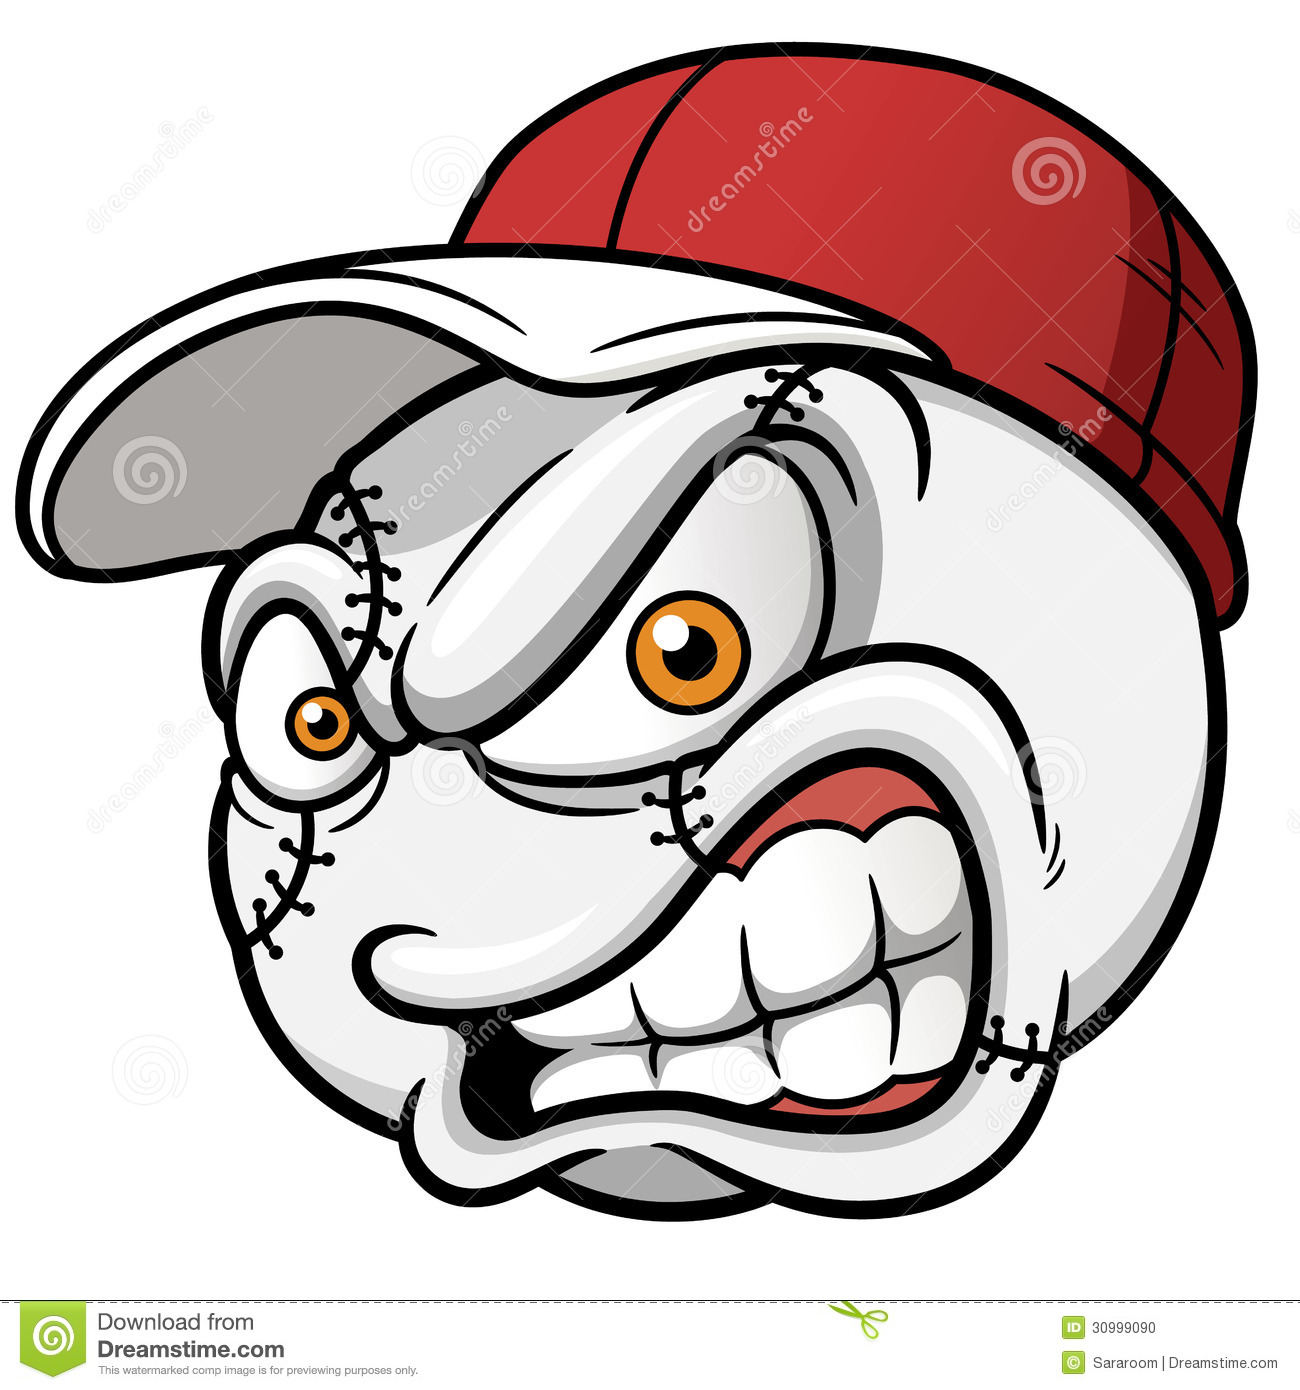 Baseball Cartoon Ball Stock Photo - Image: 30999090